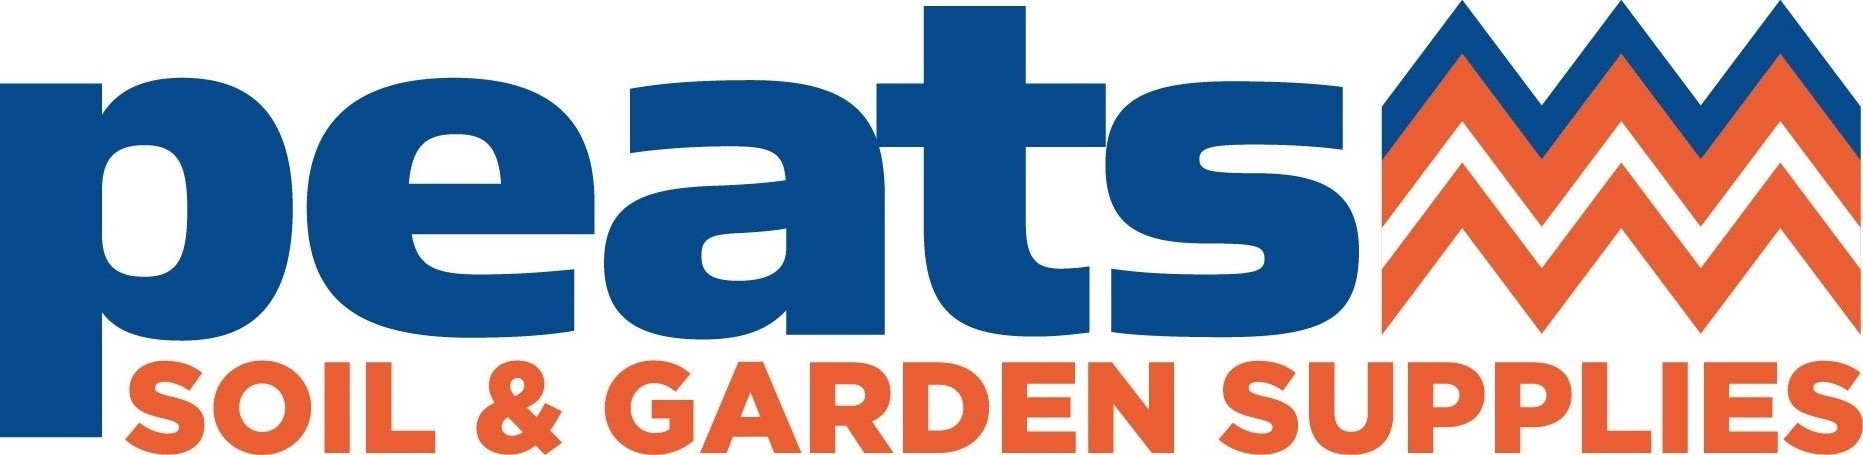 peats-main-logo-(orange-blue)